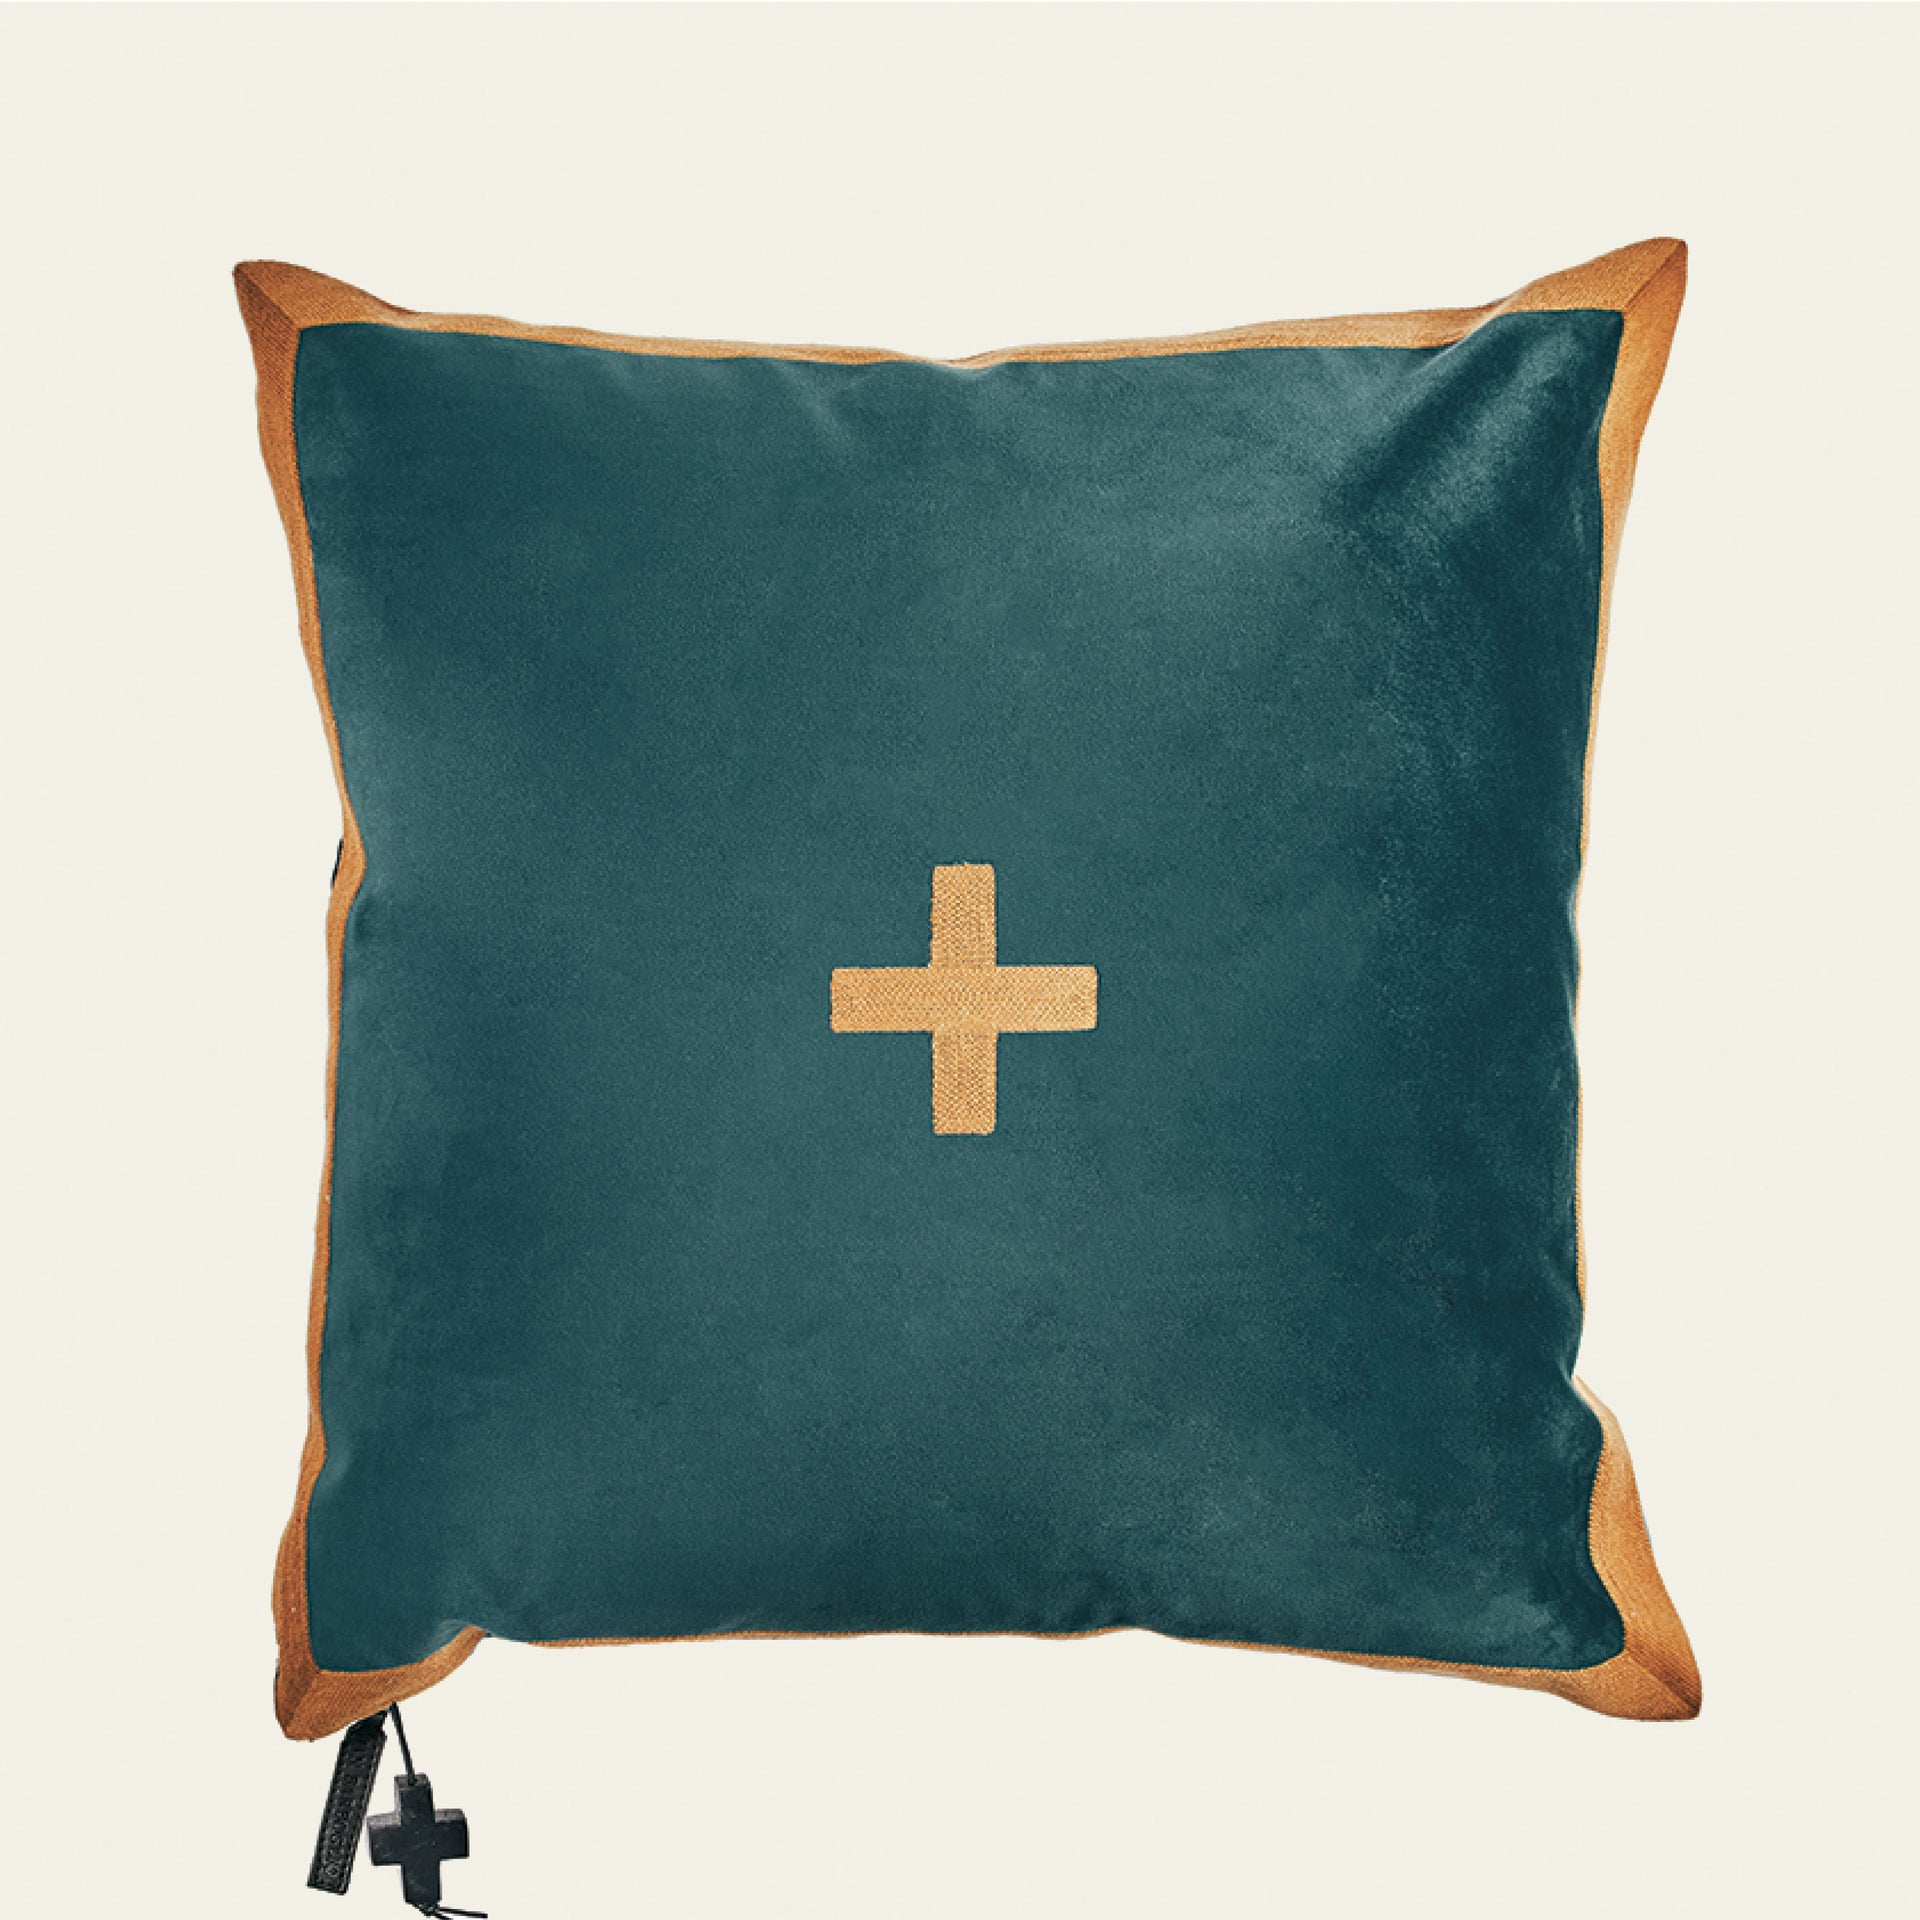 Cardenal Pillow - Turquoise